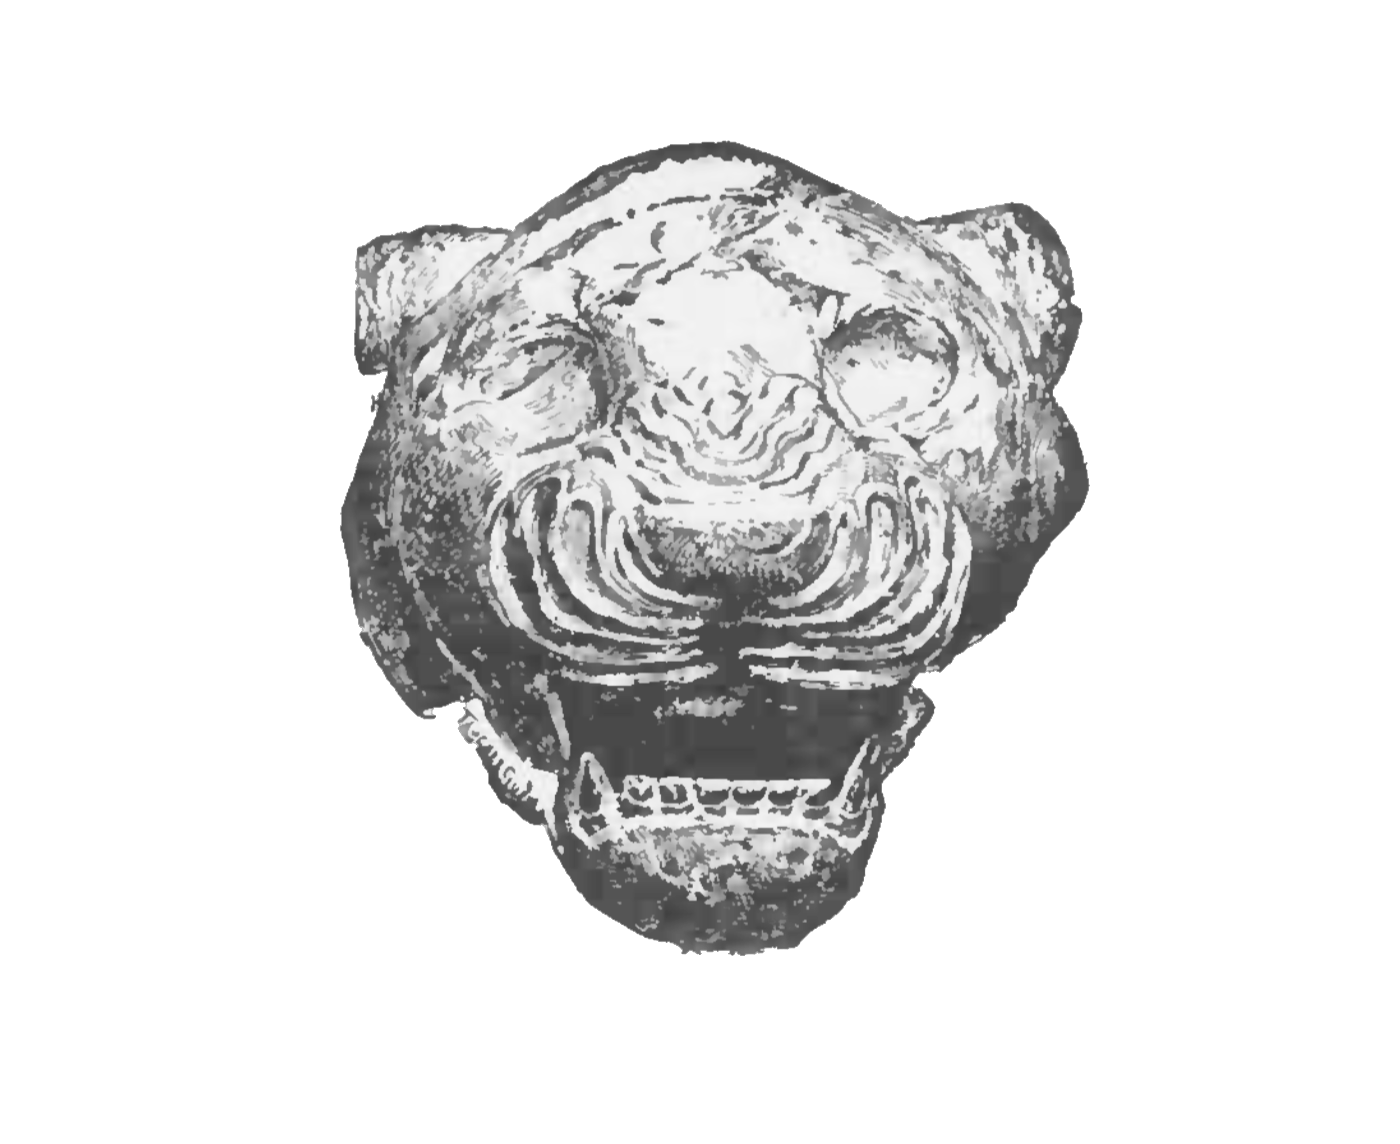 Chaldean_Head of a Lion.png